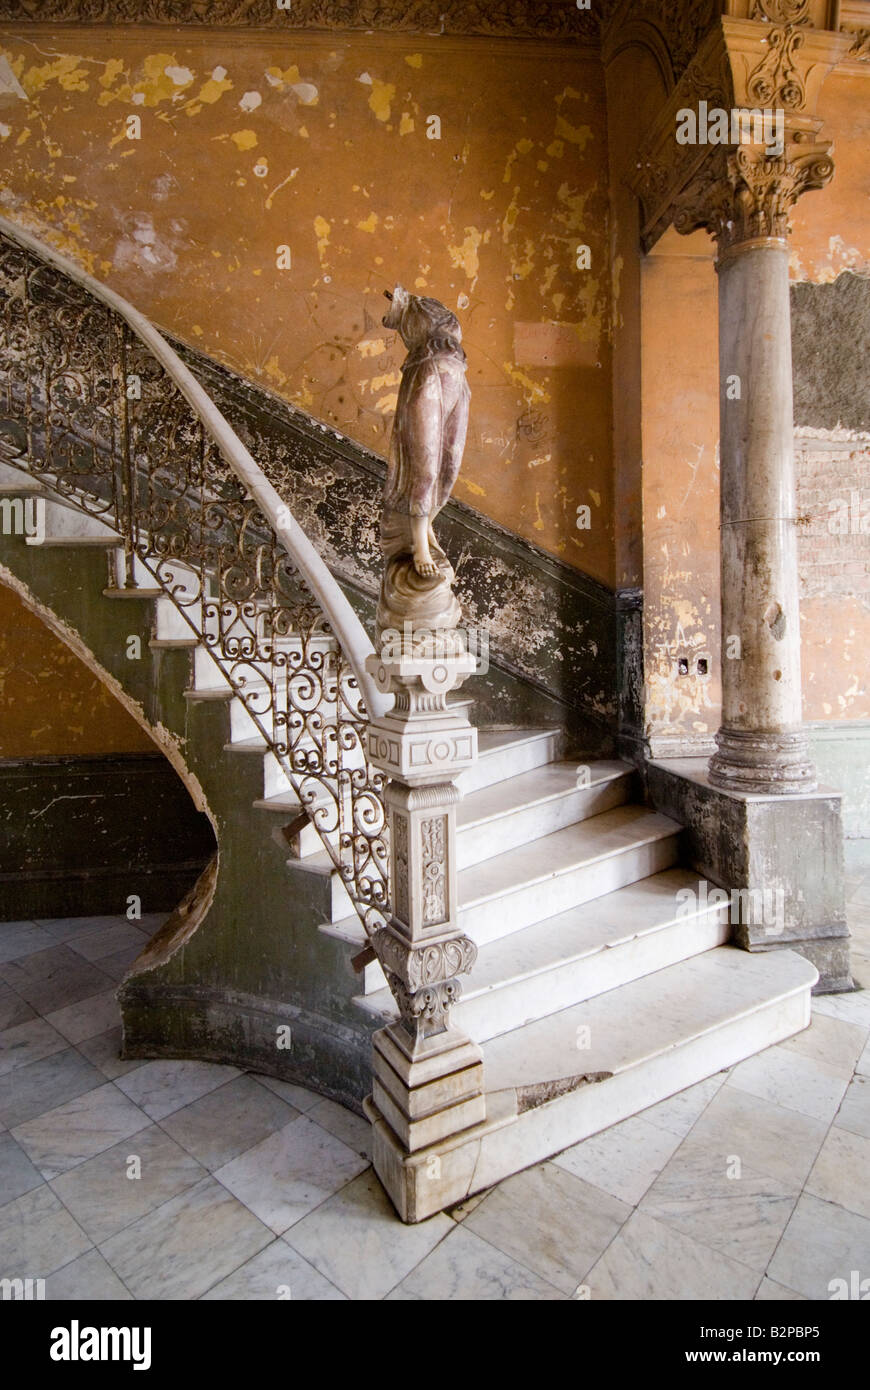 Admirable Broken Figurine On An Old Staircase Inside Run Down Colonial House Inspirational Interior Design Netriciaus